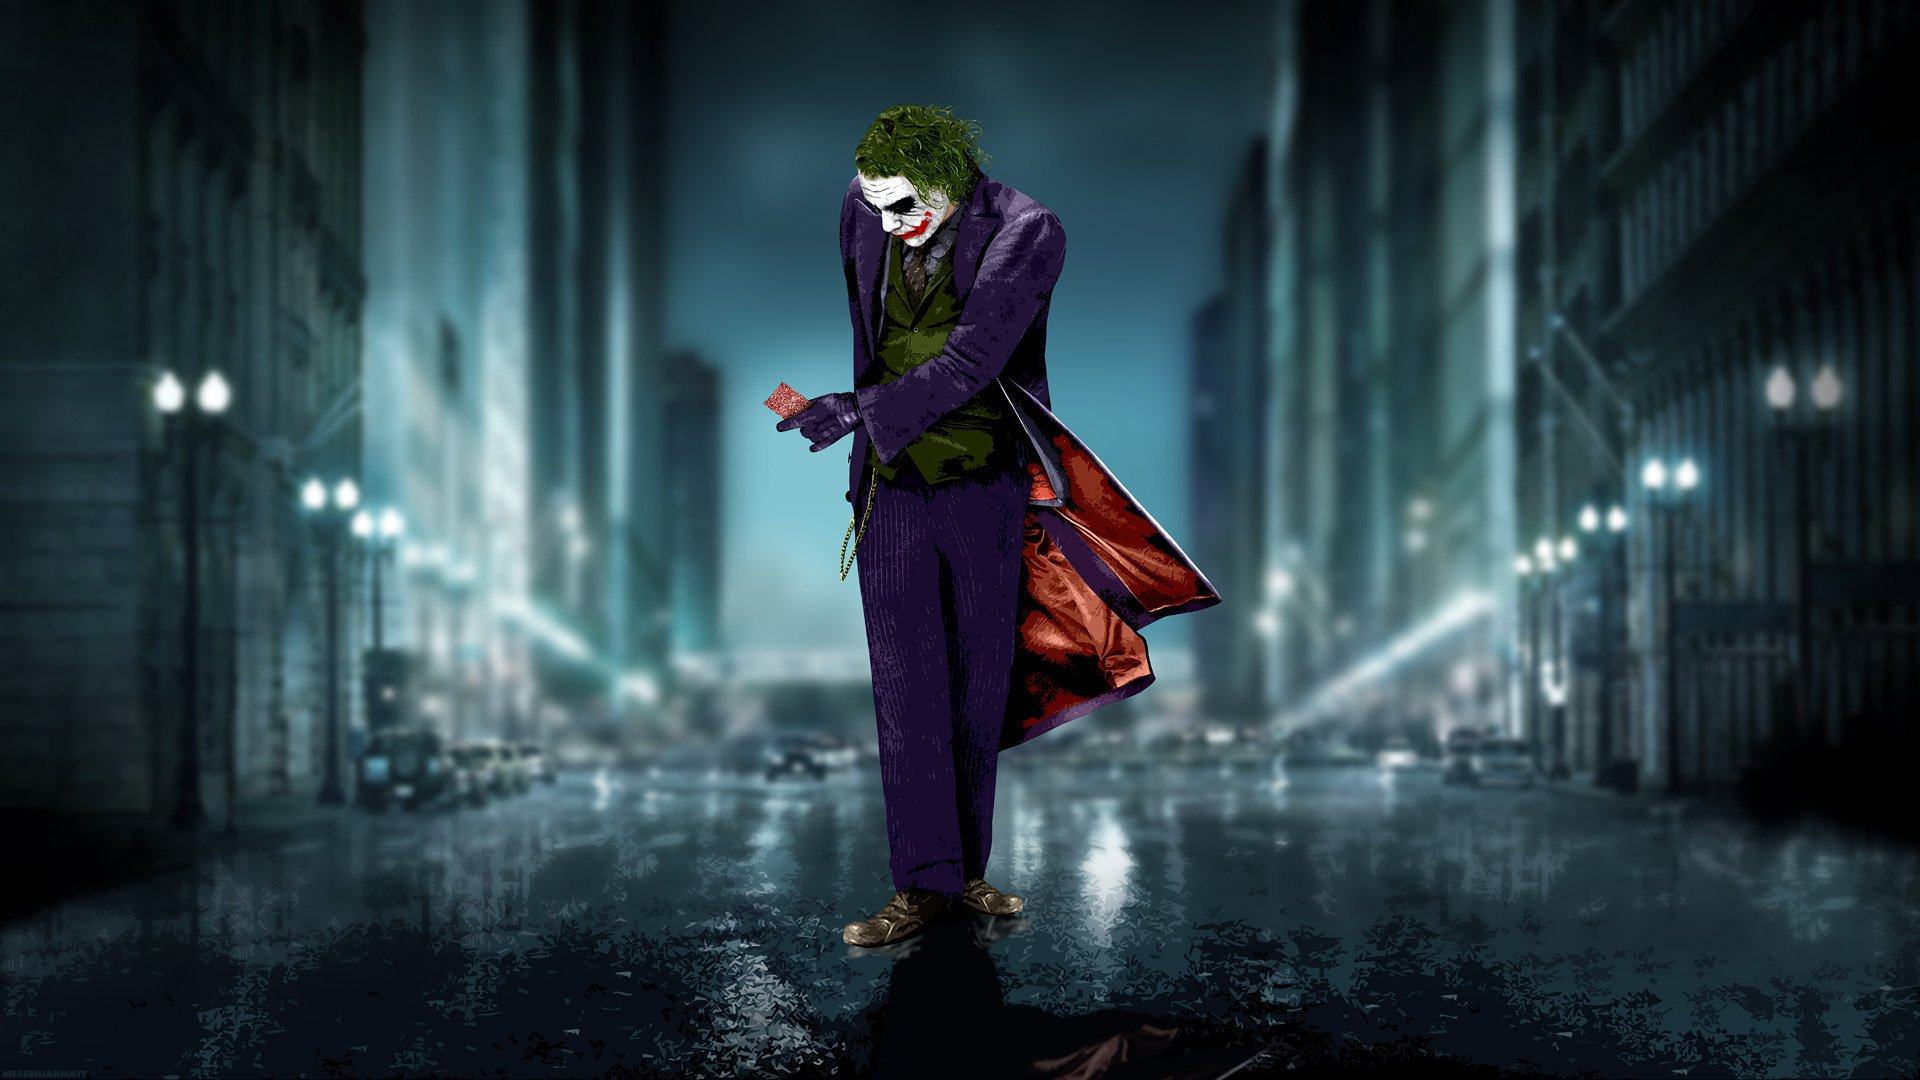 HD Wallpaper Search more Hollywood Movies high Definition 1080p 1920x1080